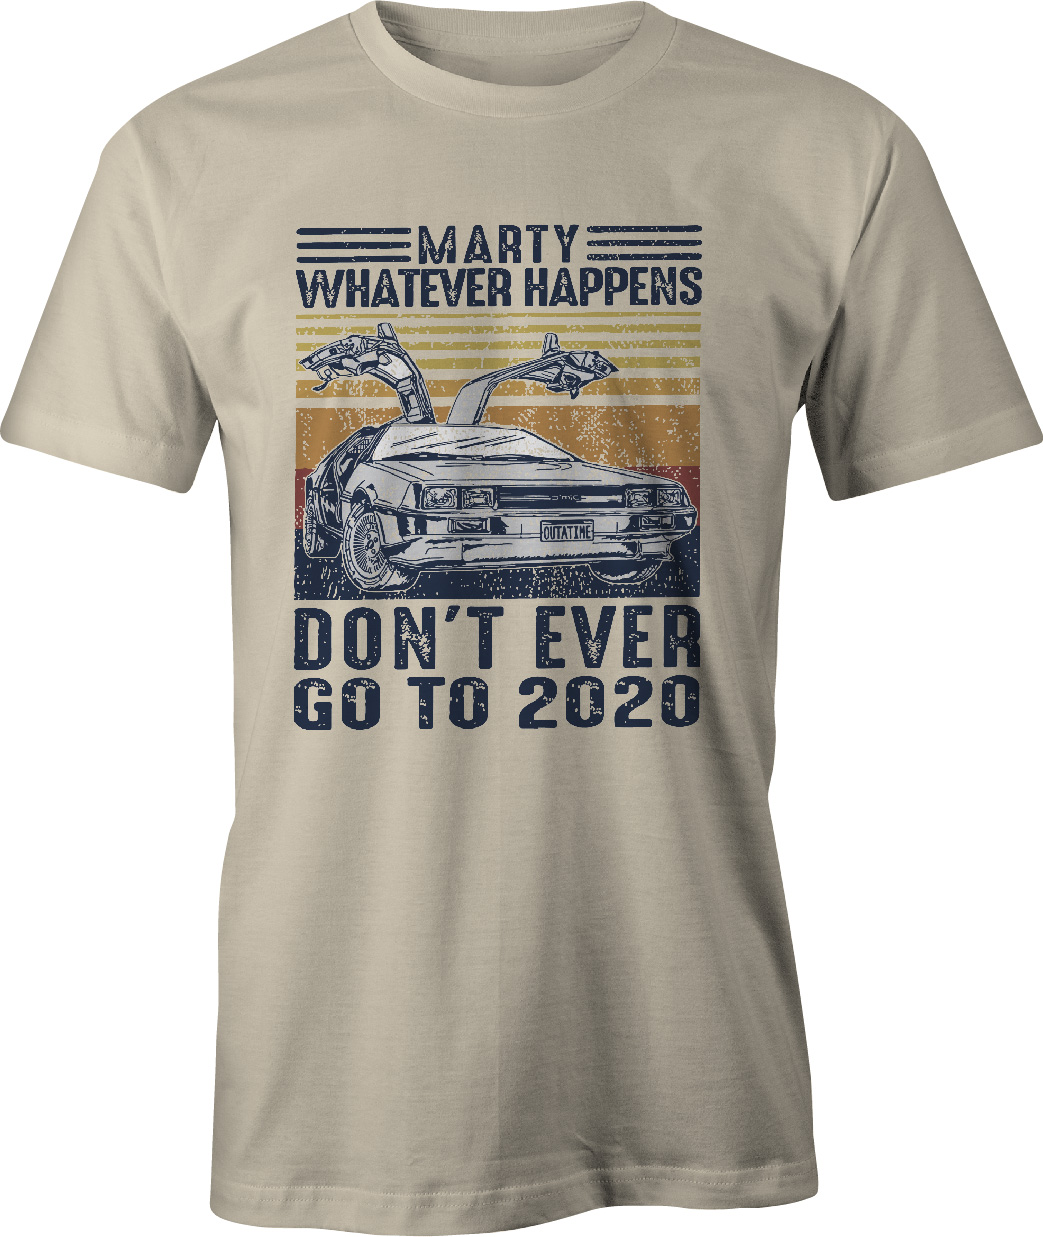 Back To The Future Don't Ever Go Back to 2021 T Shirt in sand